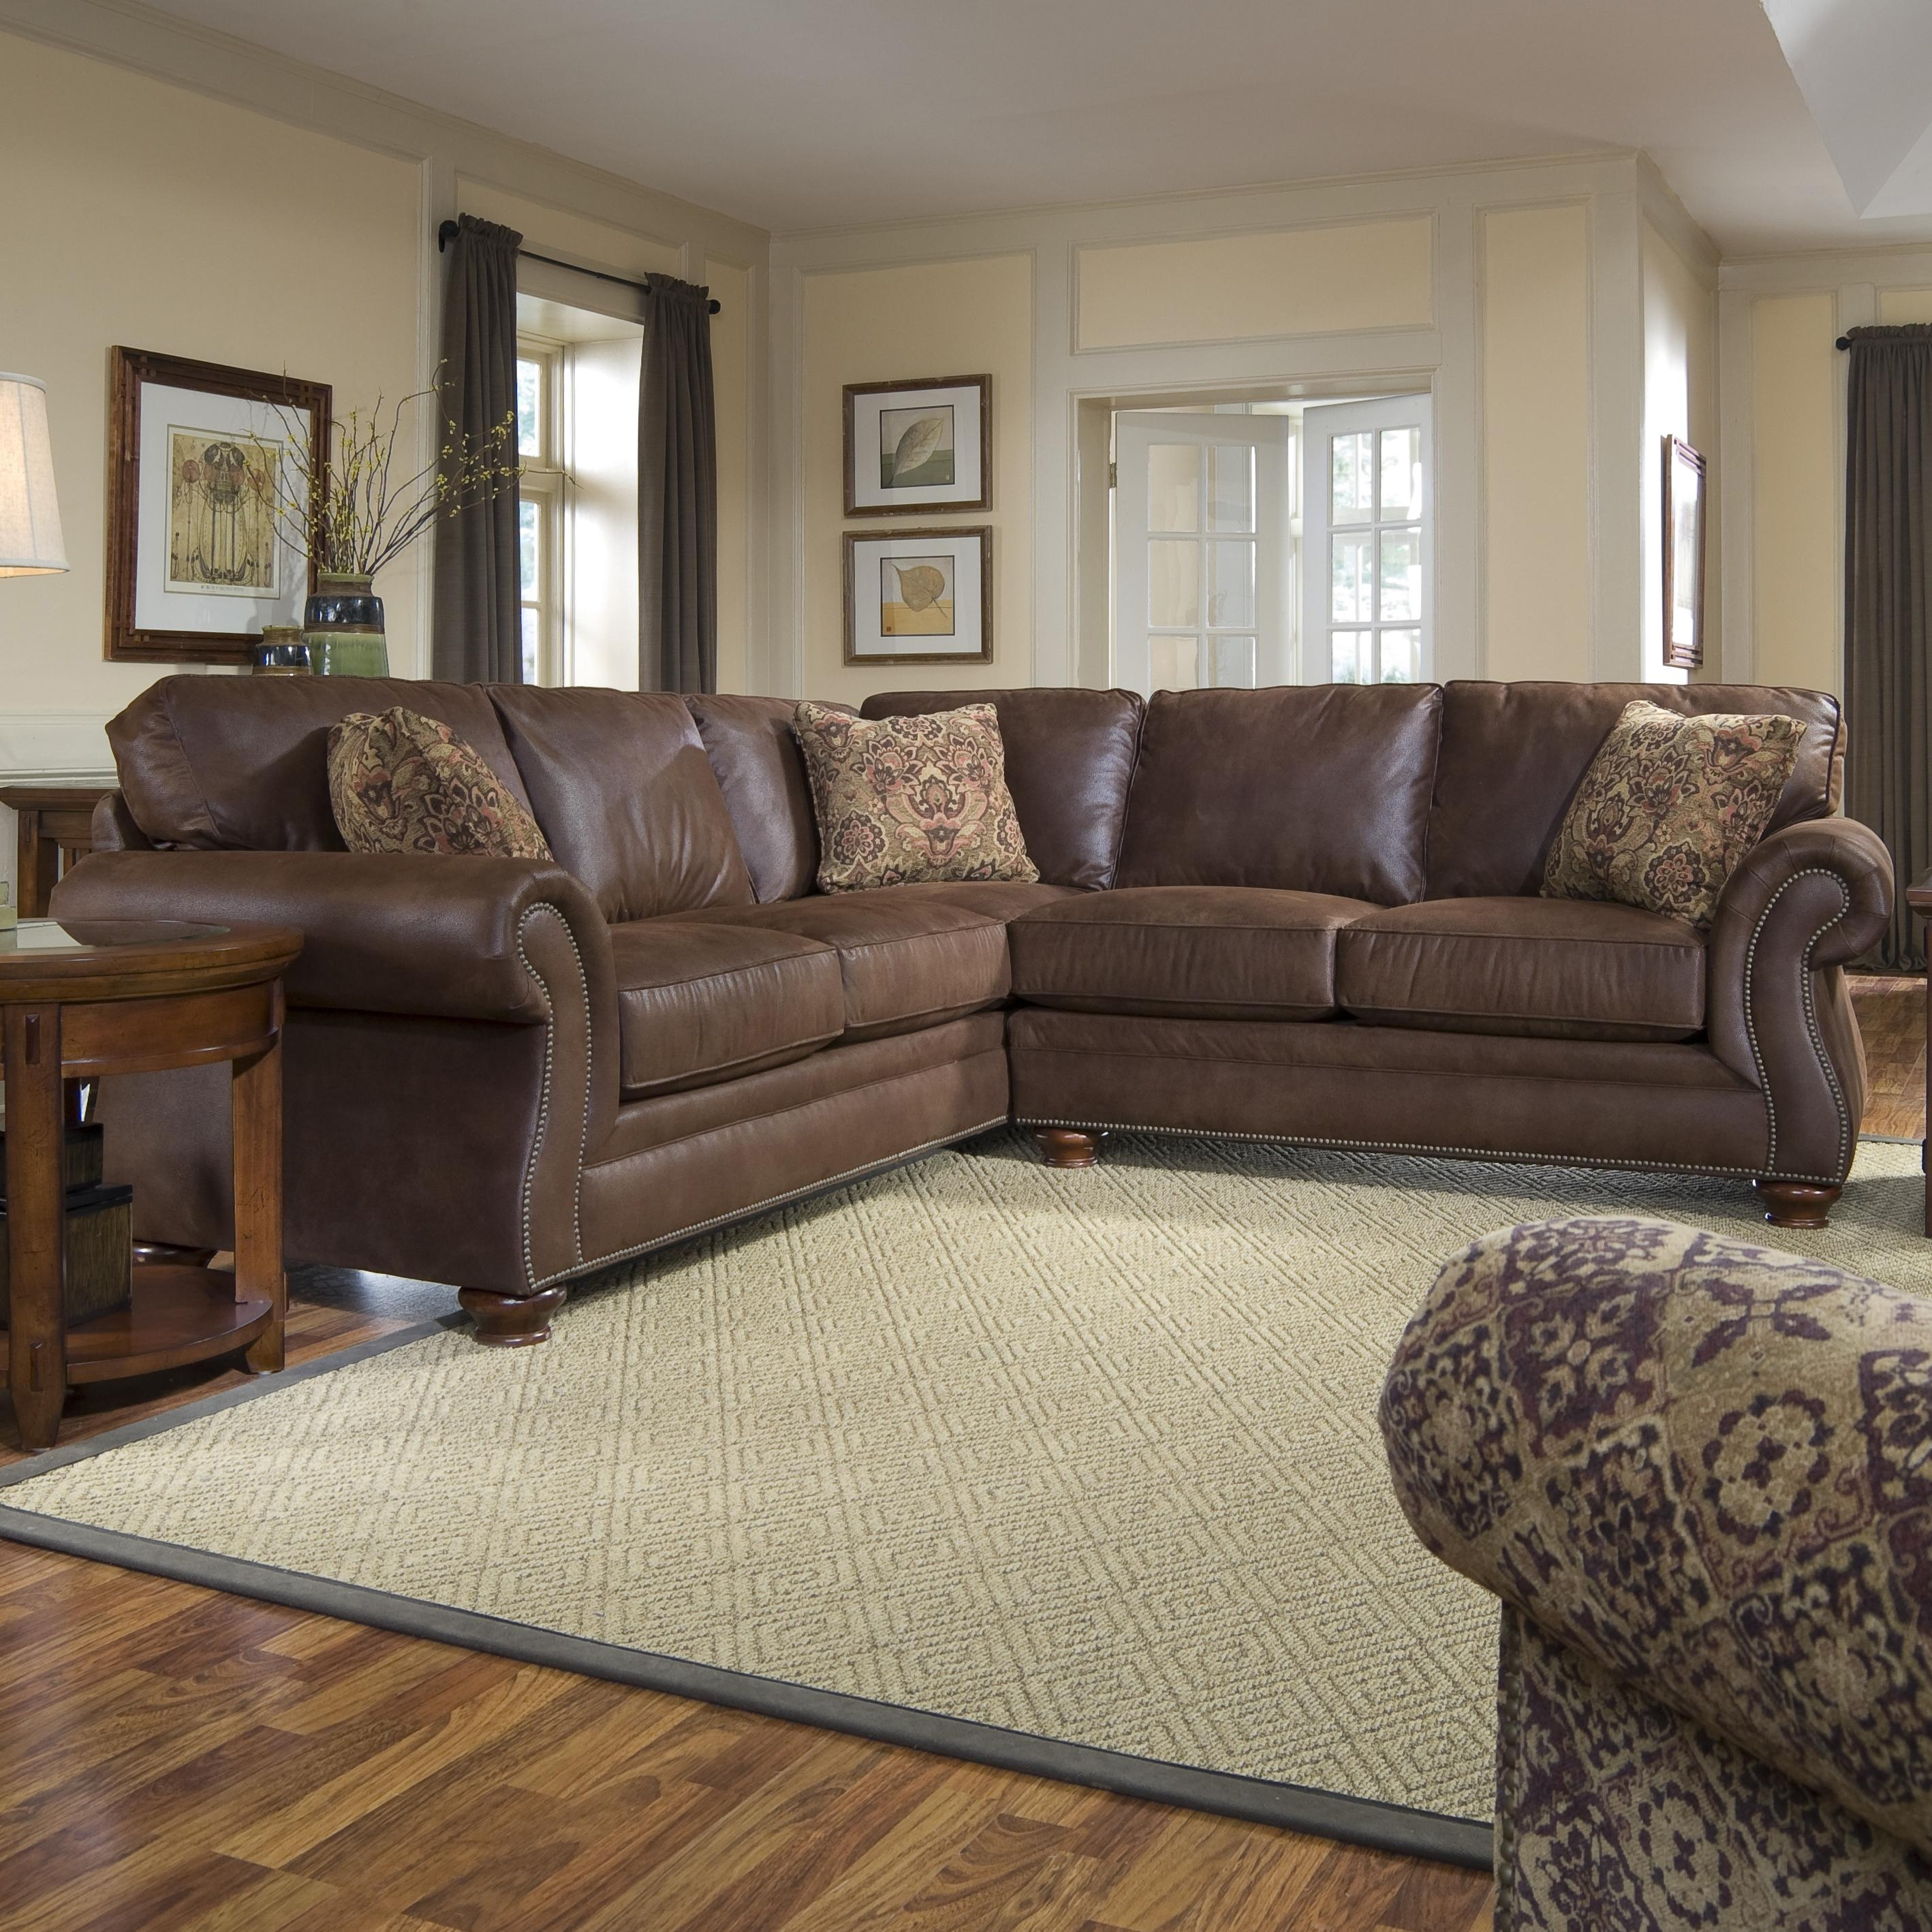 Broyhill Furniture Laramie 3 Piece Sectional Sofa Broyhill Of With Regard To Broyhill Sectional Sofas (Image 4 of 15)